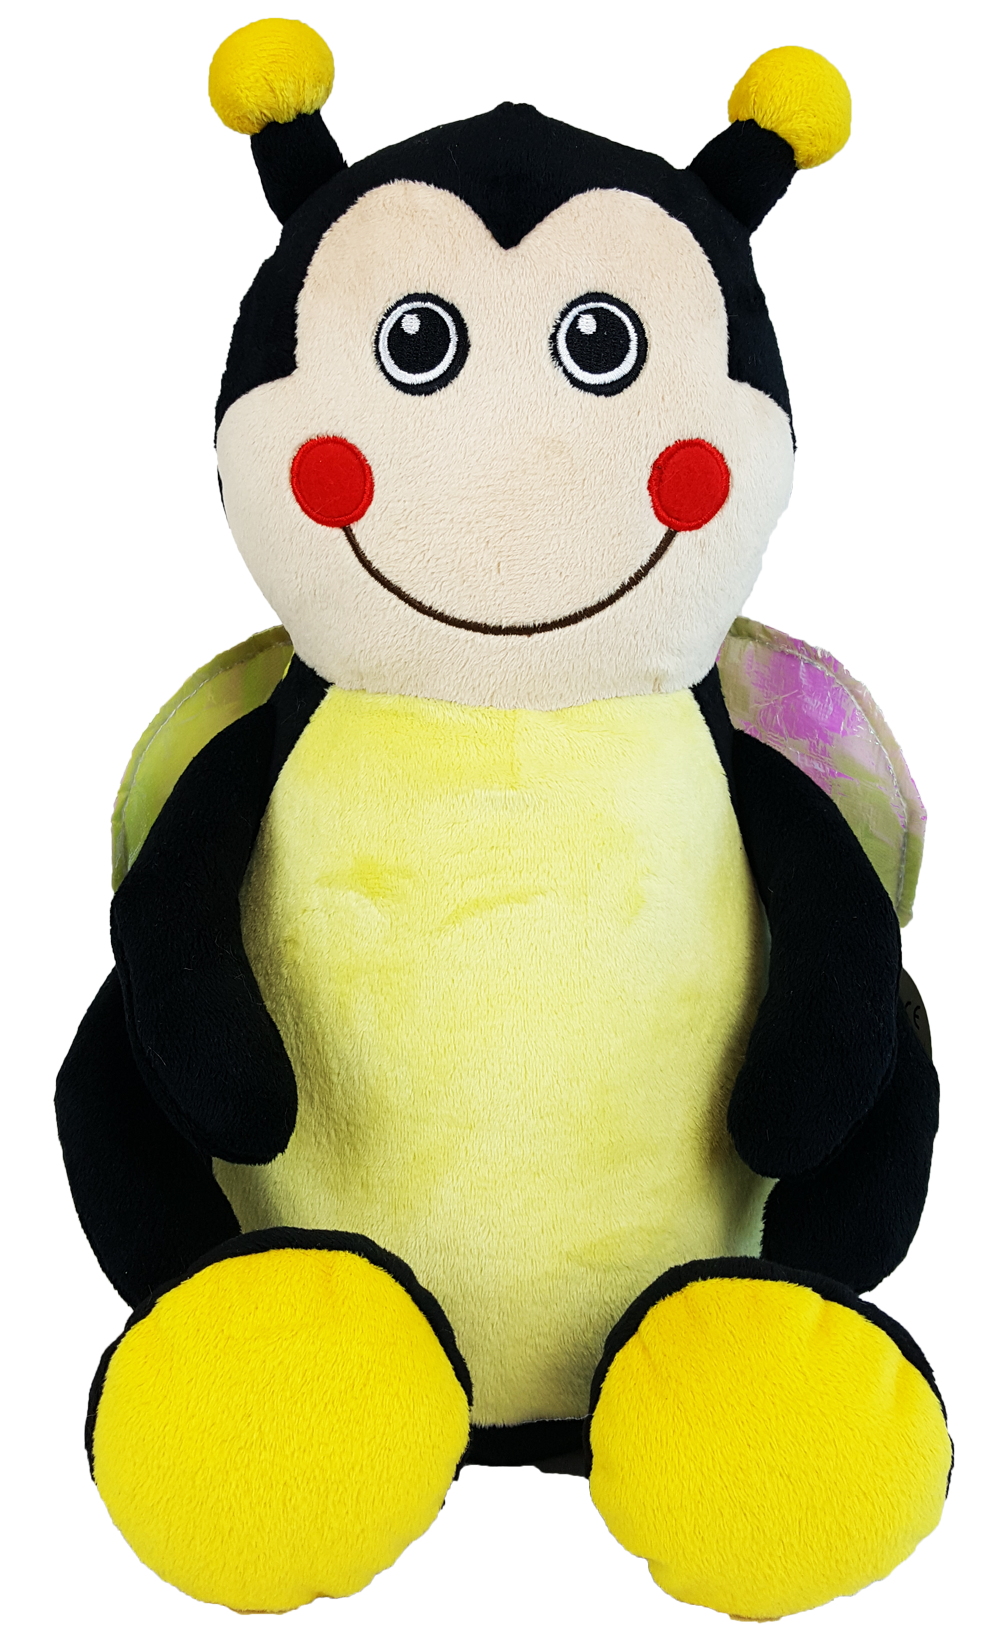 Toy clipart soft toy, Toy soft toy Transparent FREE for ...